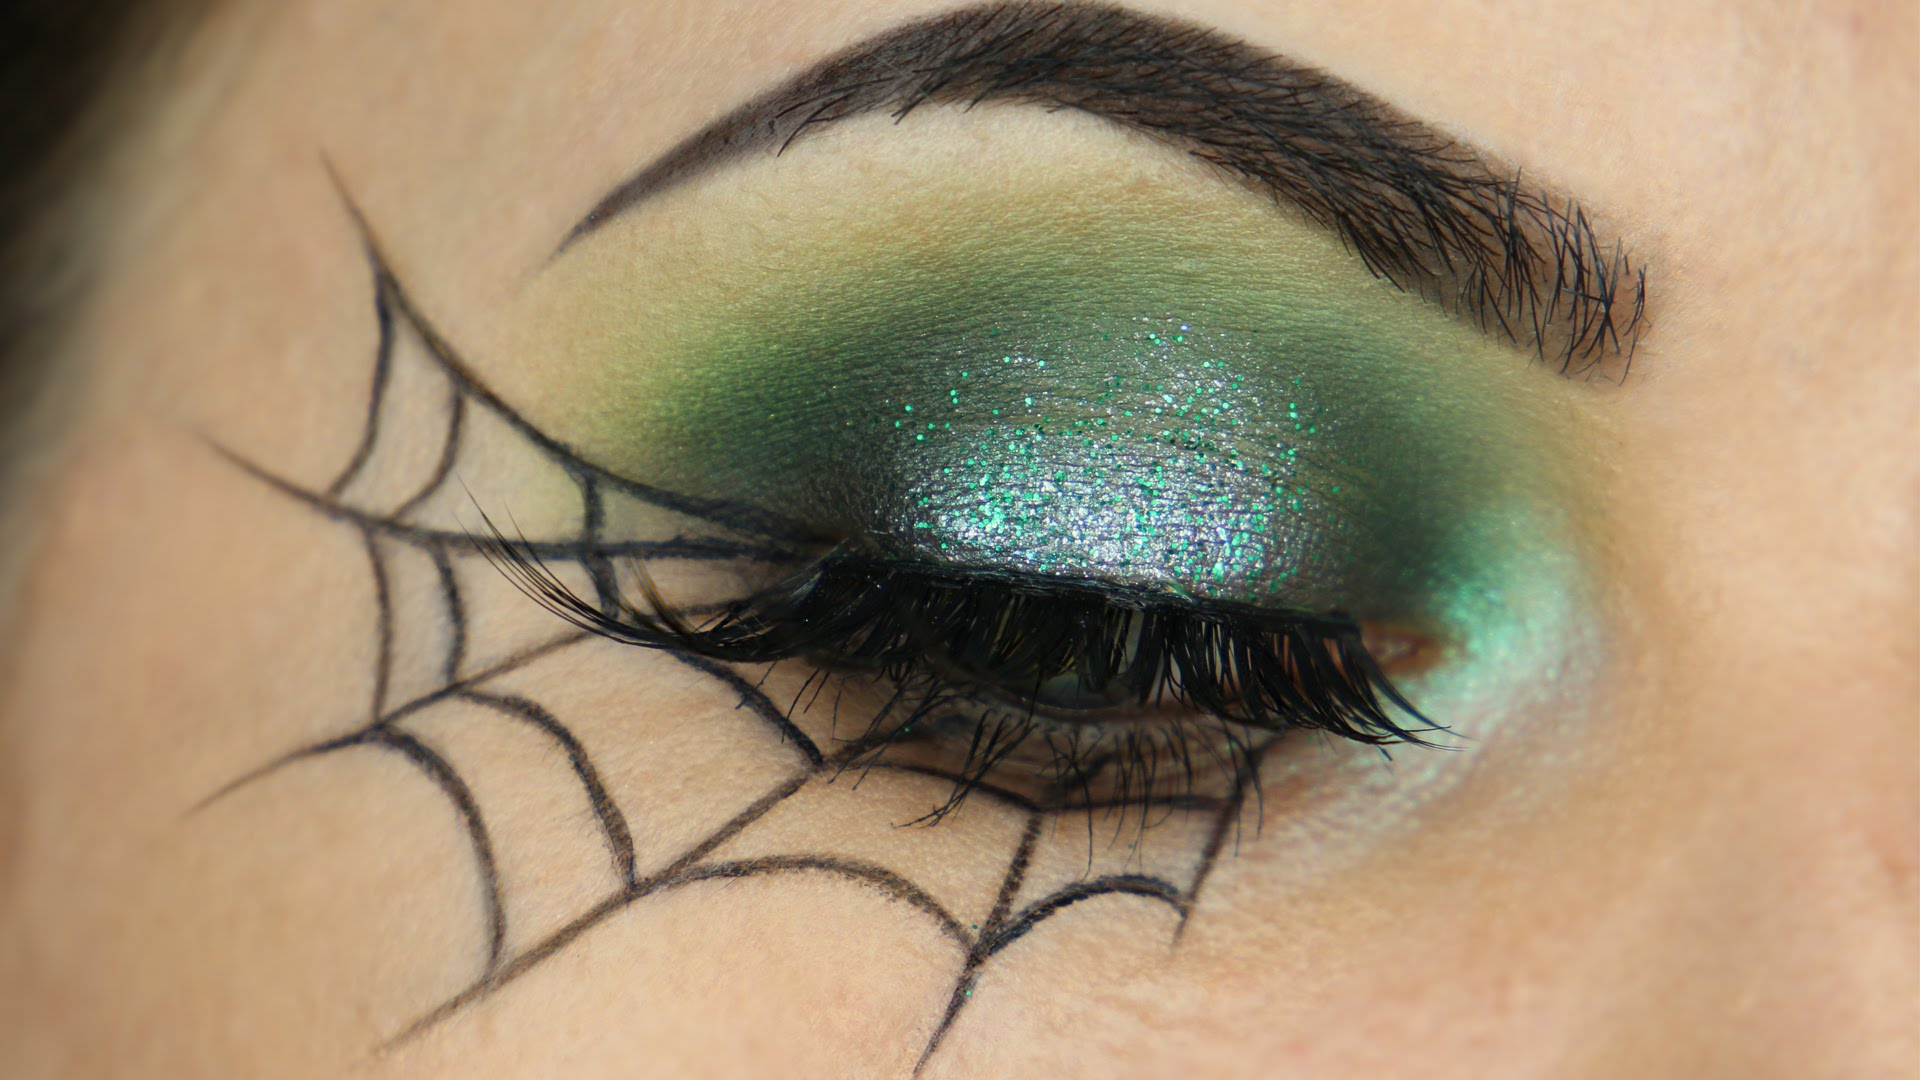 halloween eye makeup ideas to try this year